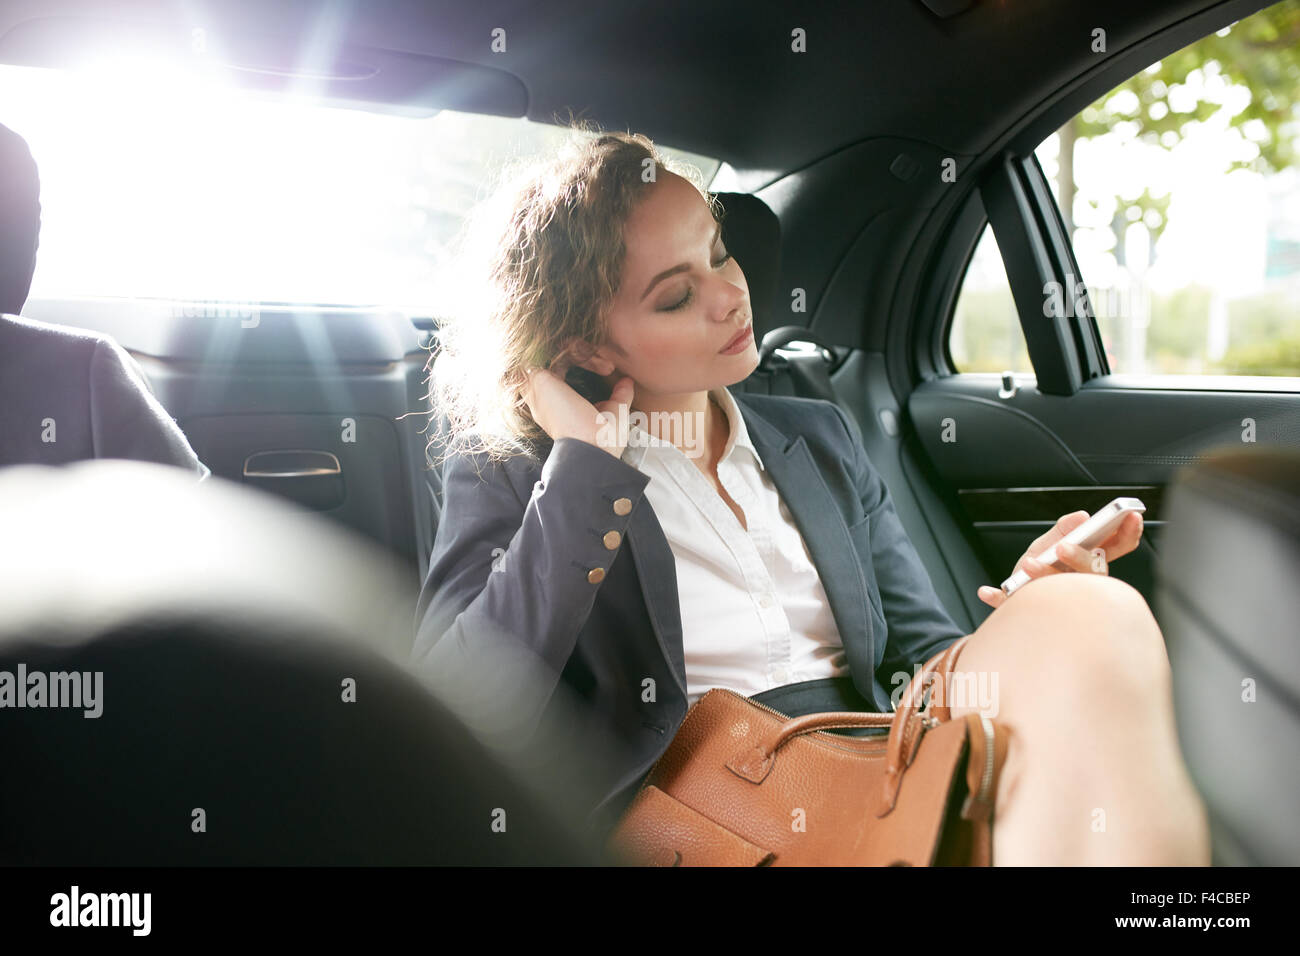 Inside shot of a car with woman sitting with her eyes closed on backseat. Female entrepreneur travelling to work - Stock Image